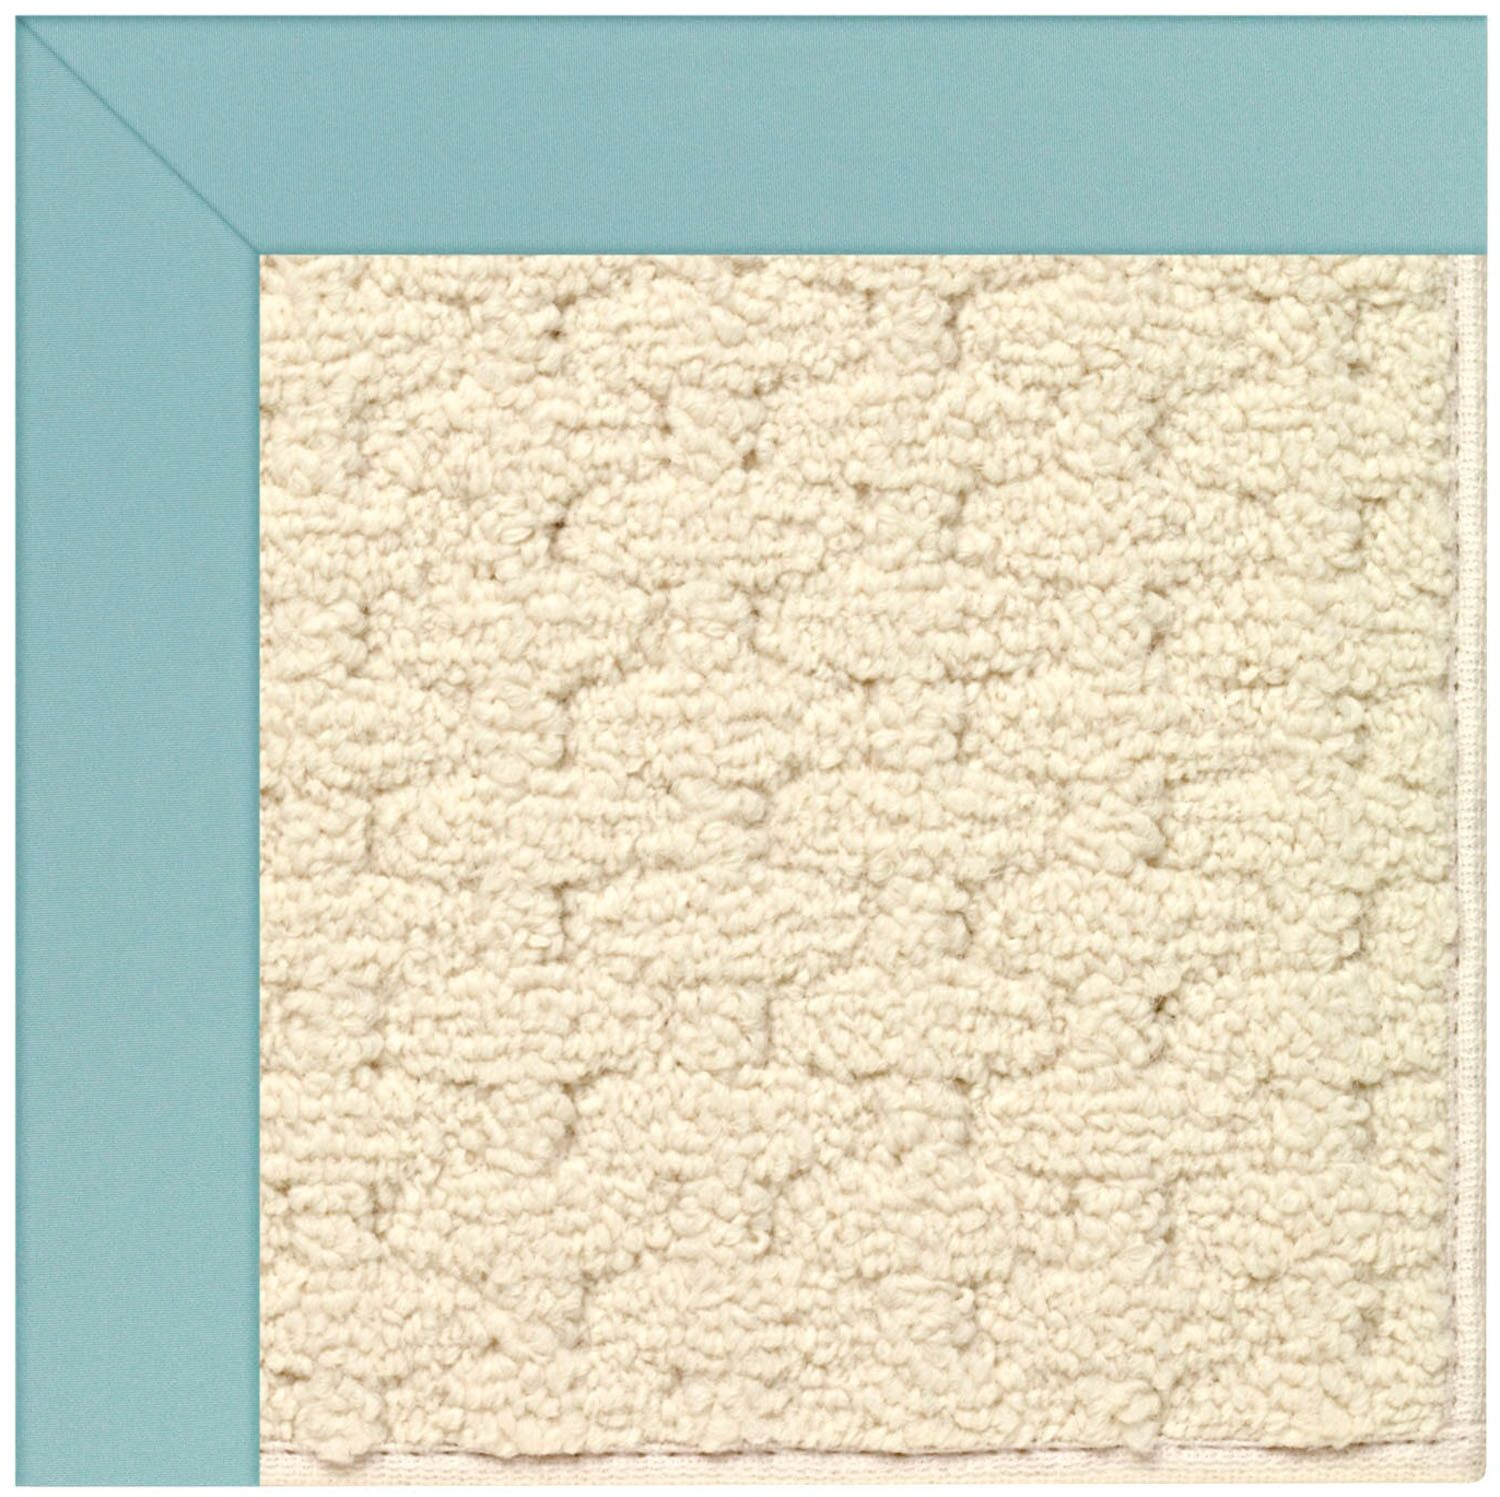 Lisle Off White Indoor/Outdoor Area Rug Rug Size: Rectangle 8' x 10'